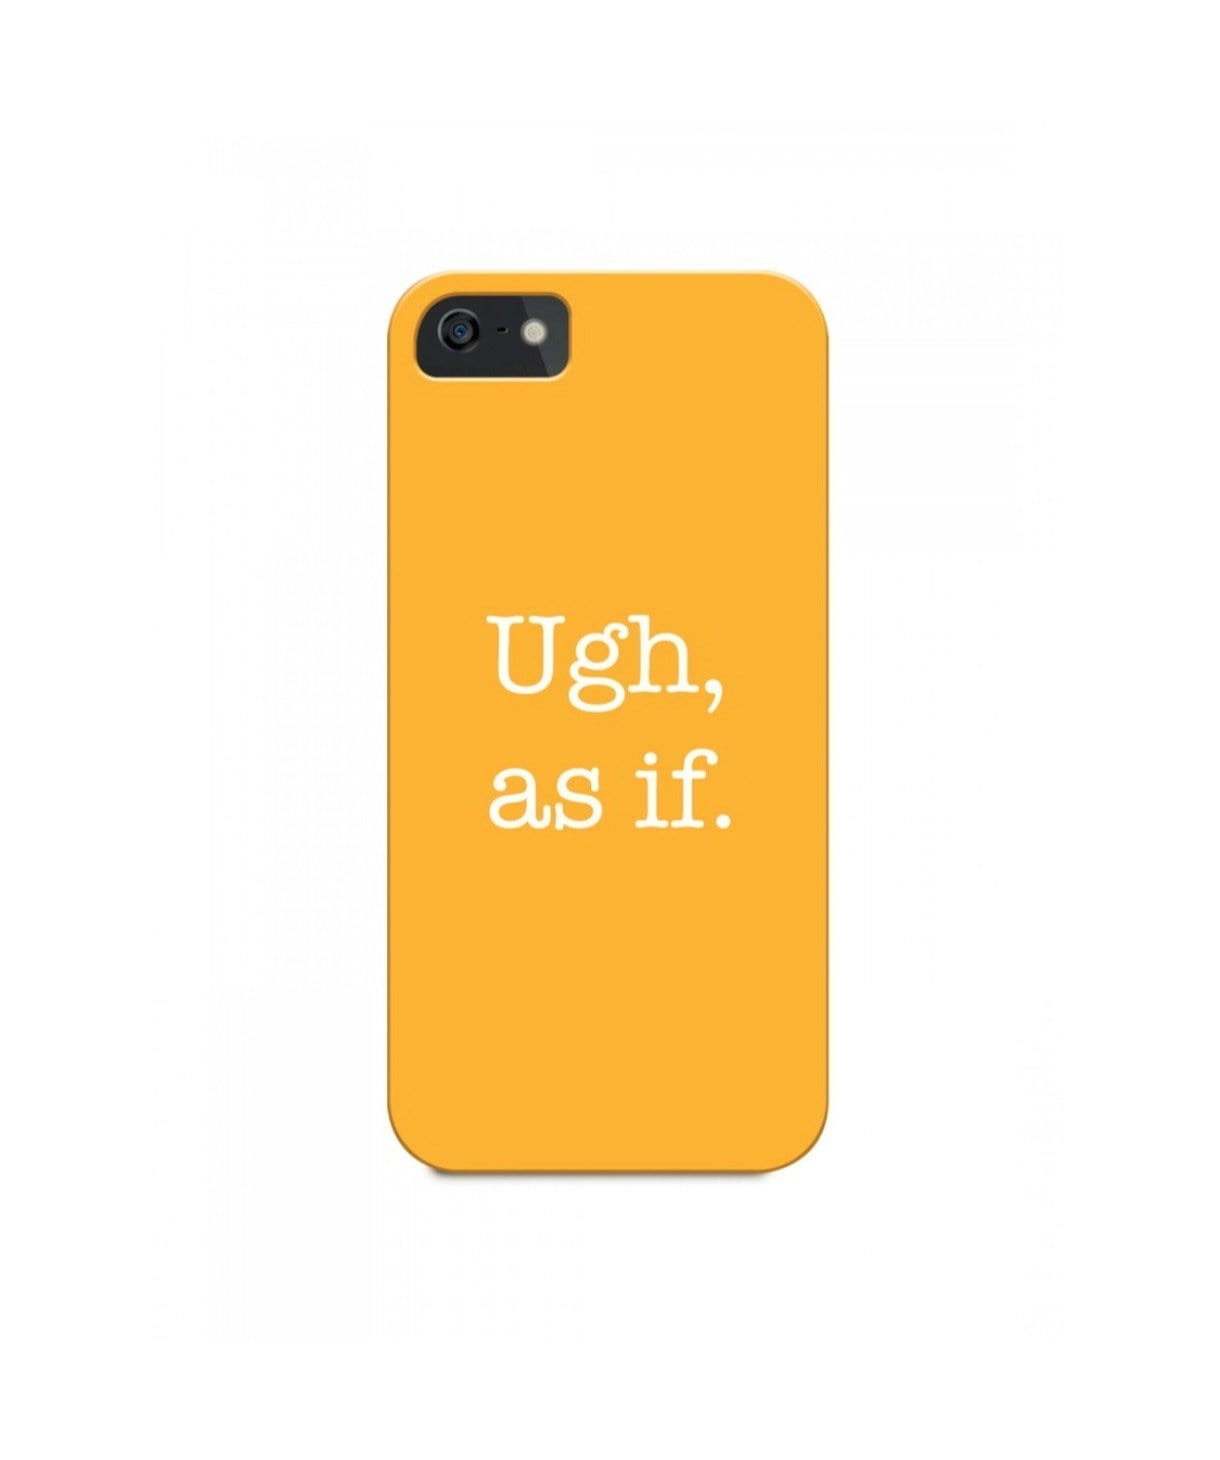 Clueless IPhone Cover (Personalisation Available) - Uptownie